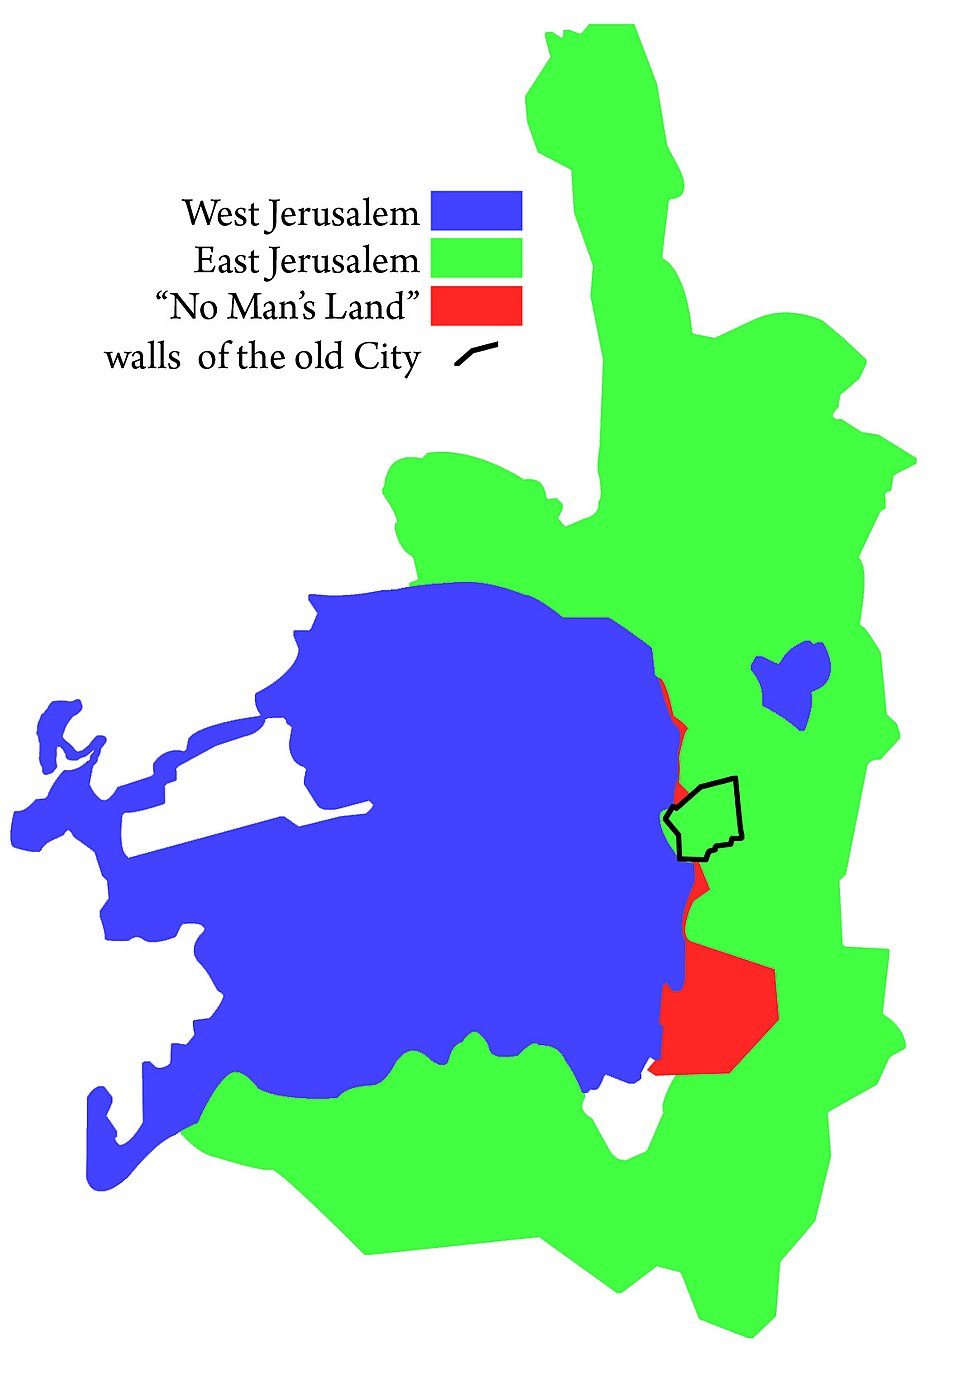 JerusalemEastAndWest